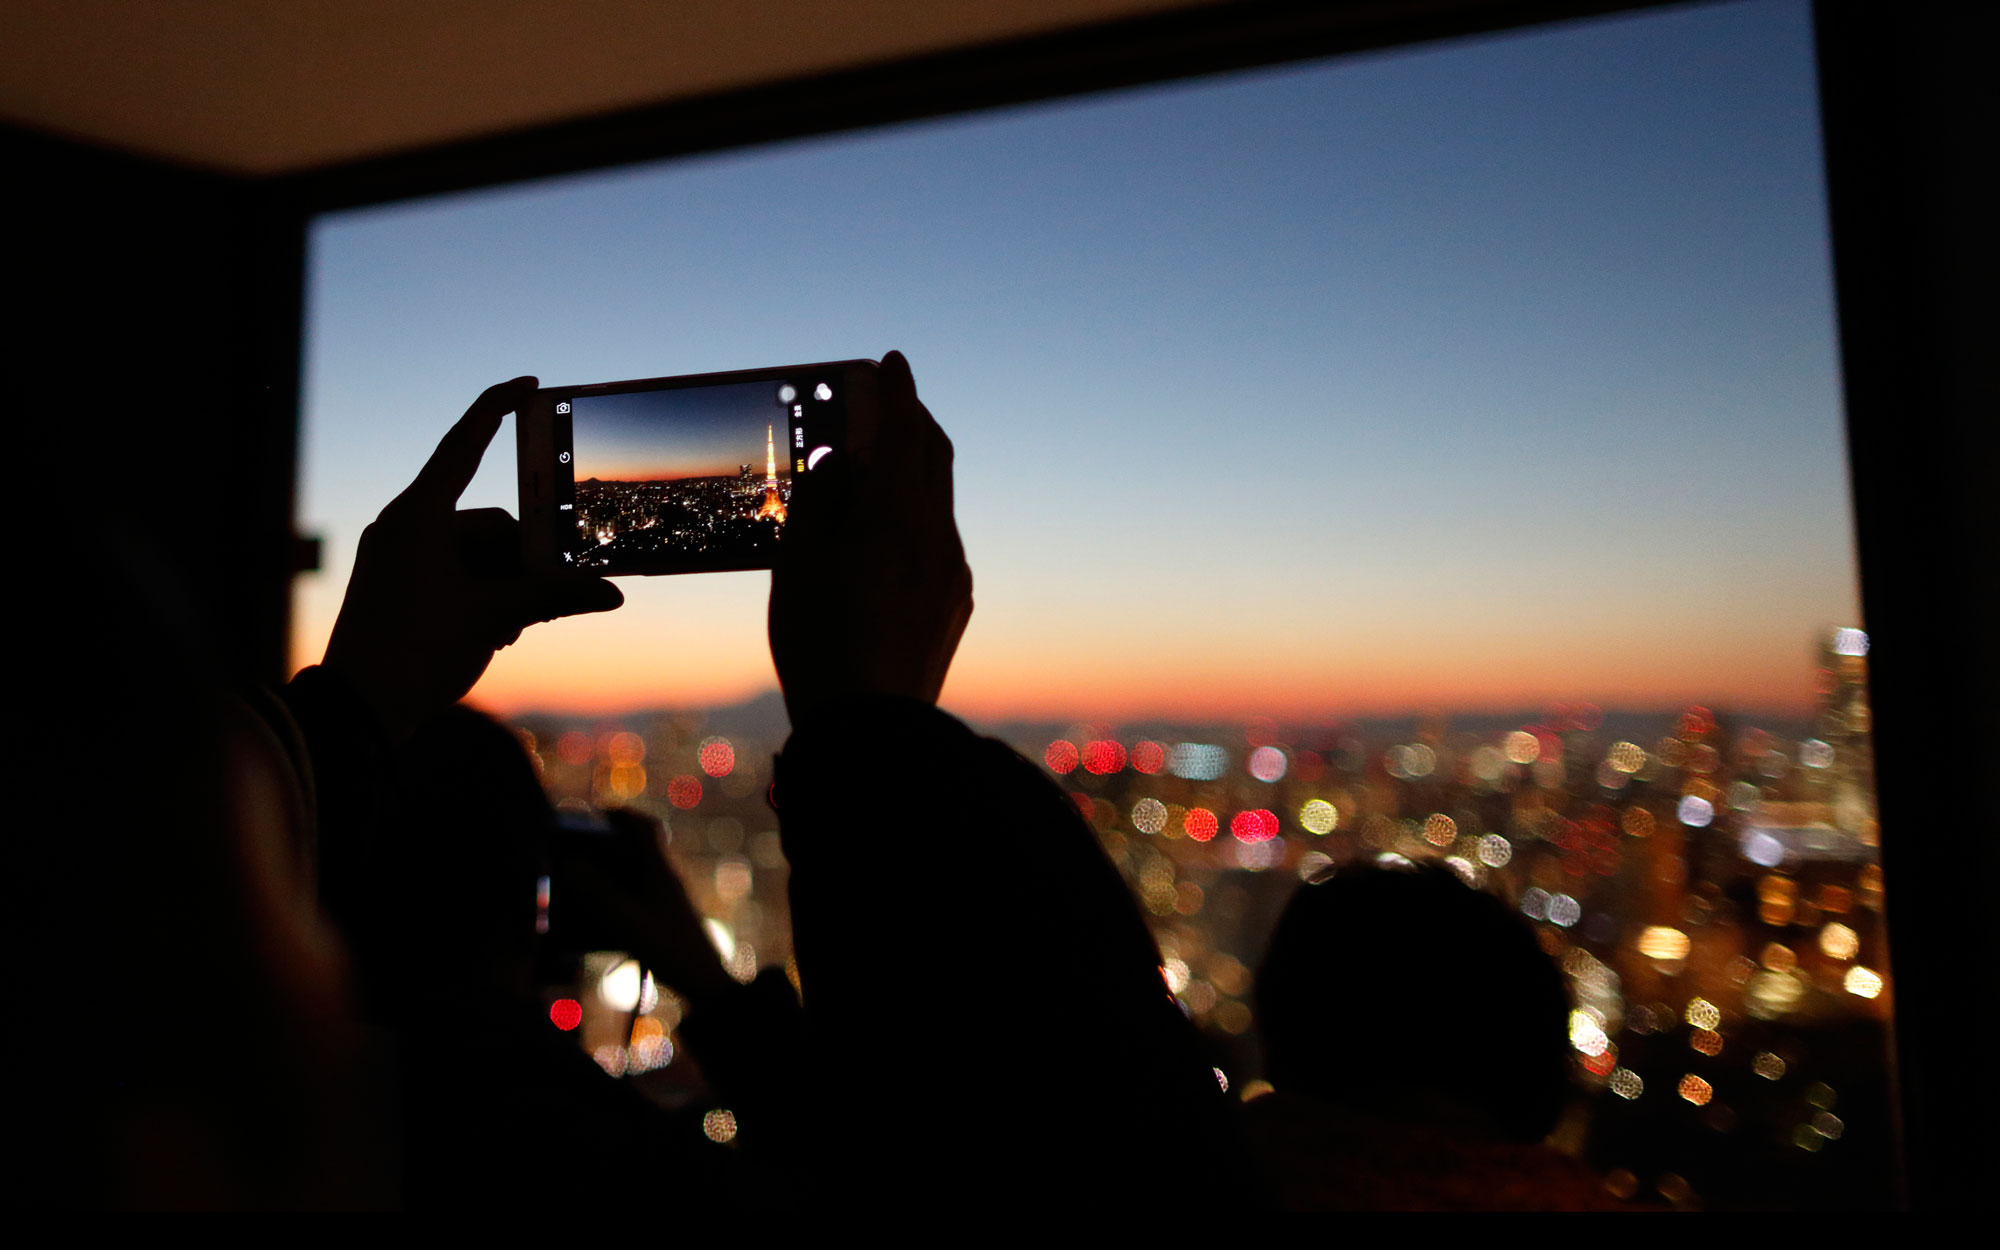 How To Take A Travel Photo On Your Smart Phone